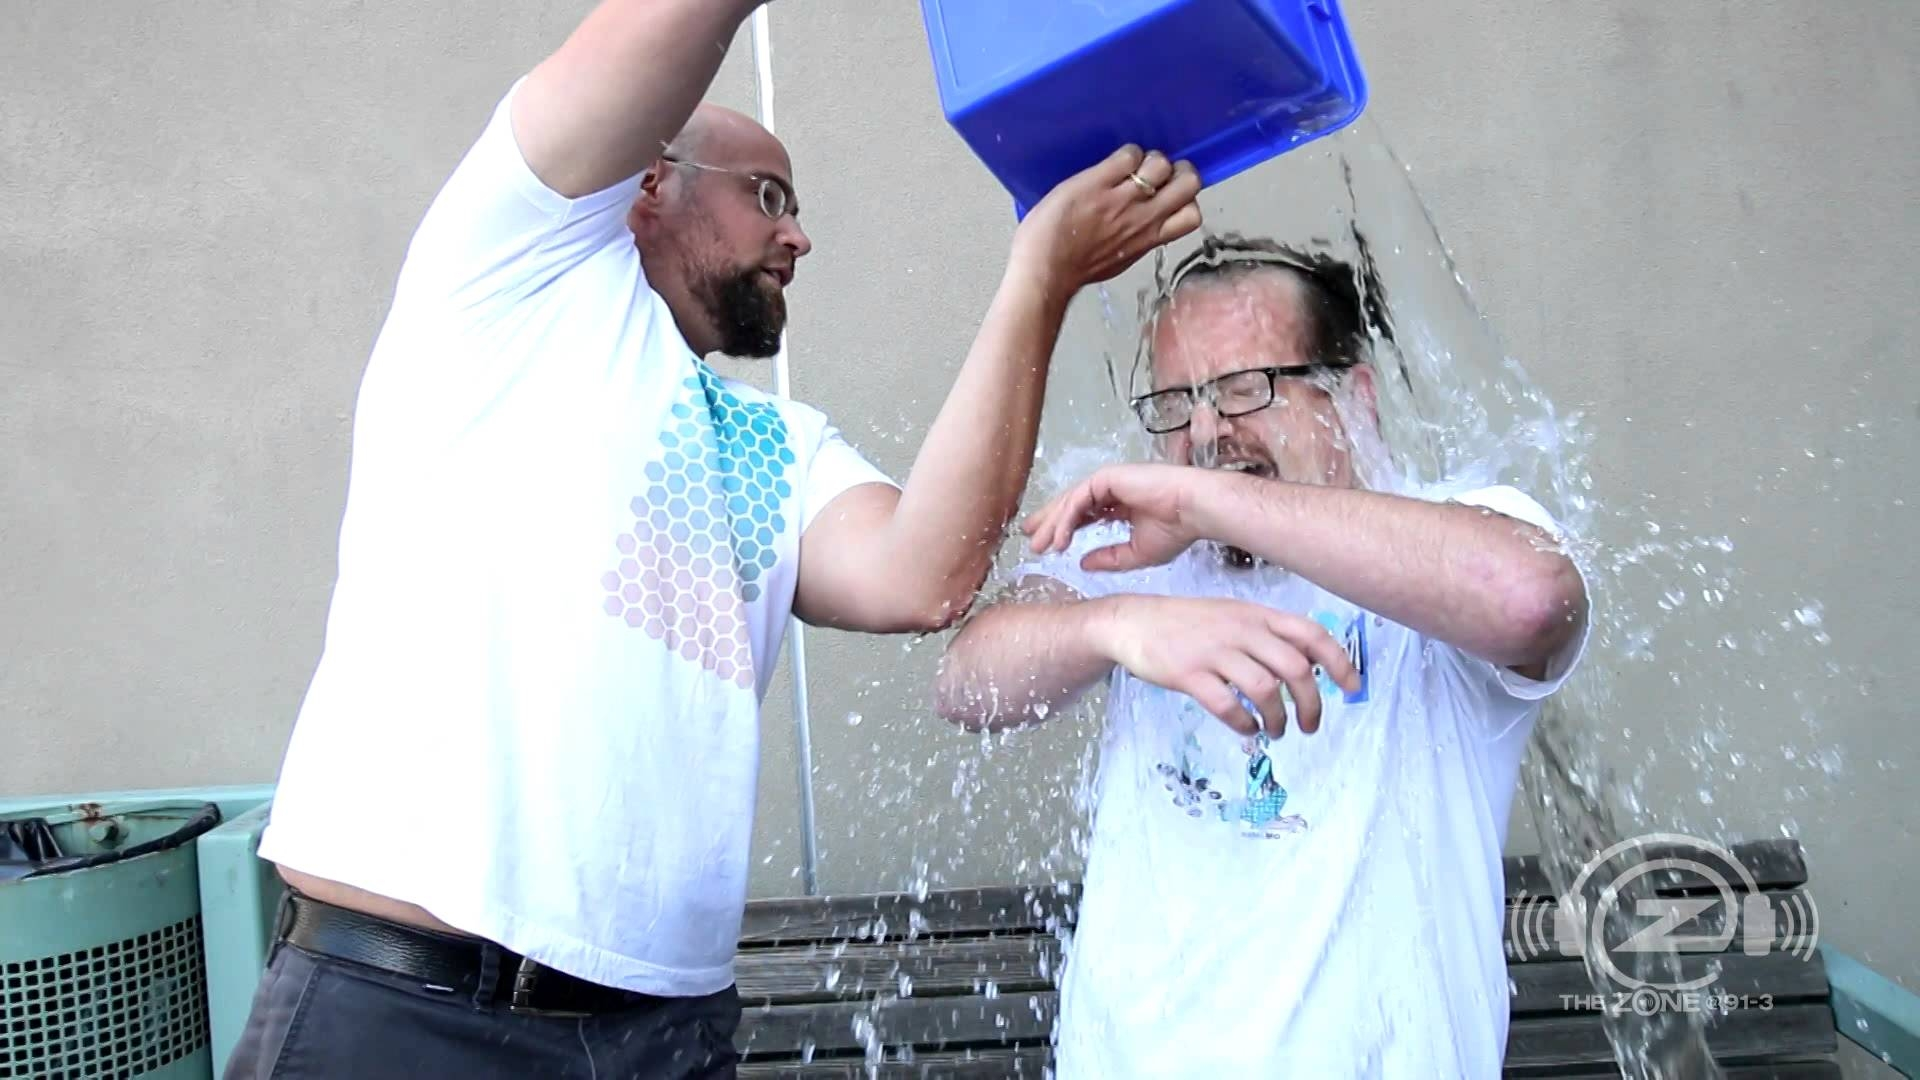 The ALS Ice bucket challenge helped make a breakthrough discovery